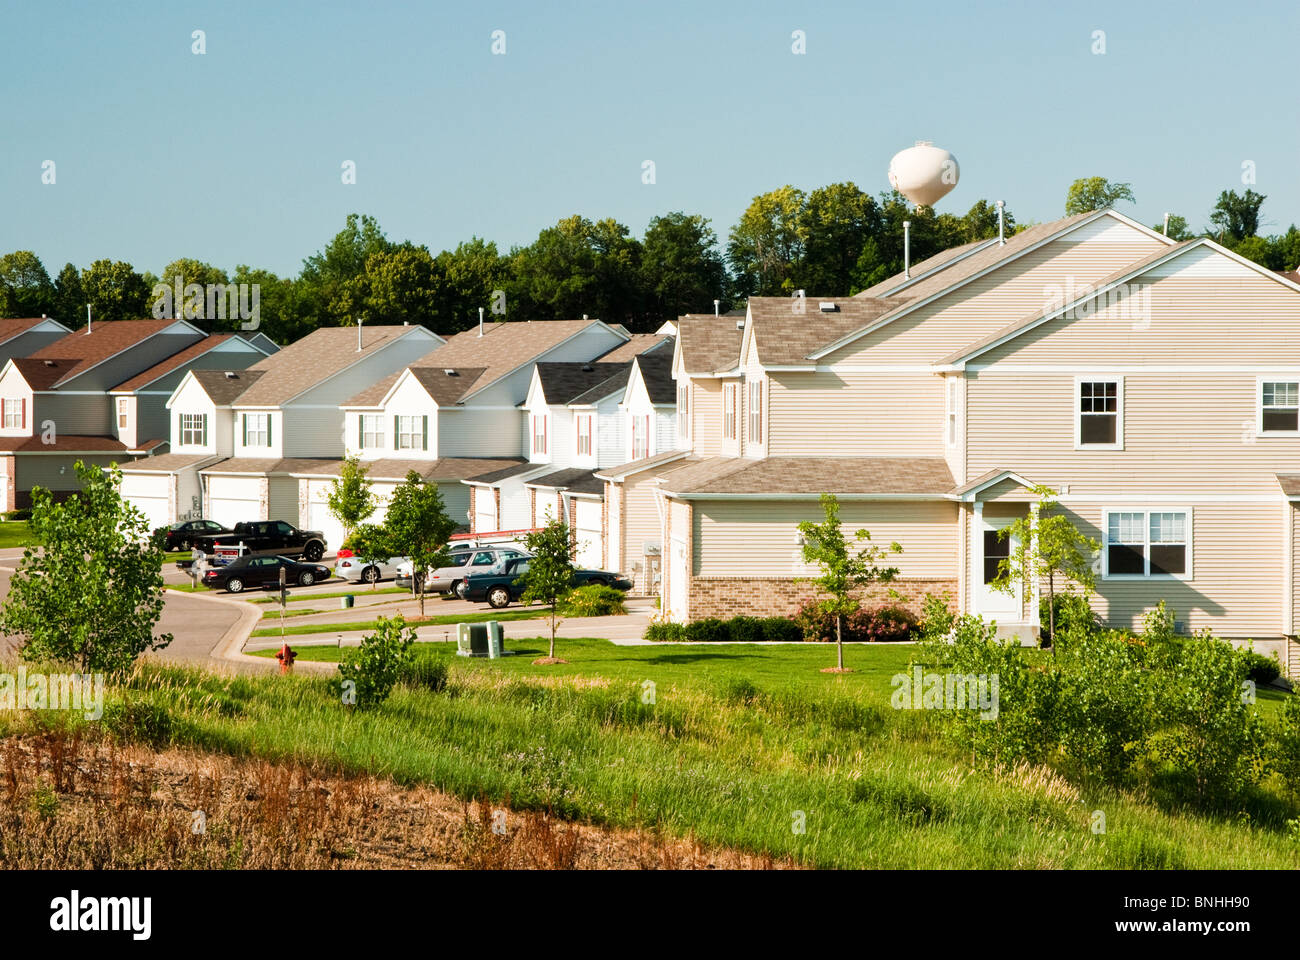 View of multiple family residences in a suburban neighborhood. - Stock Image